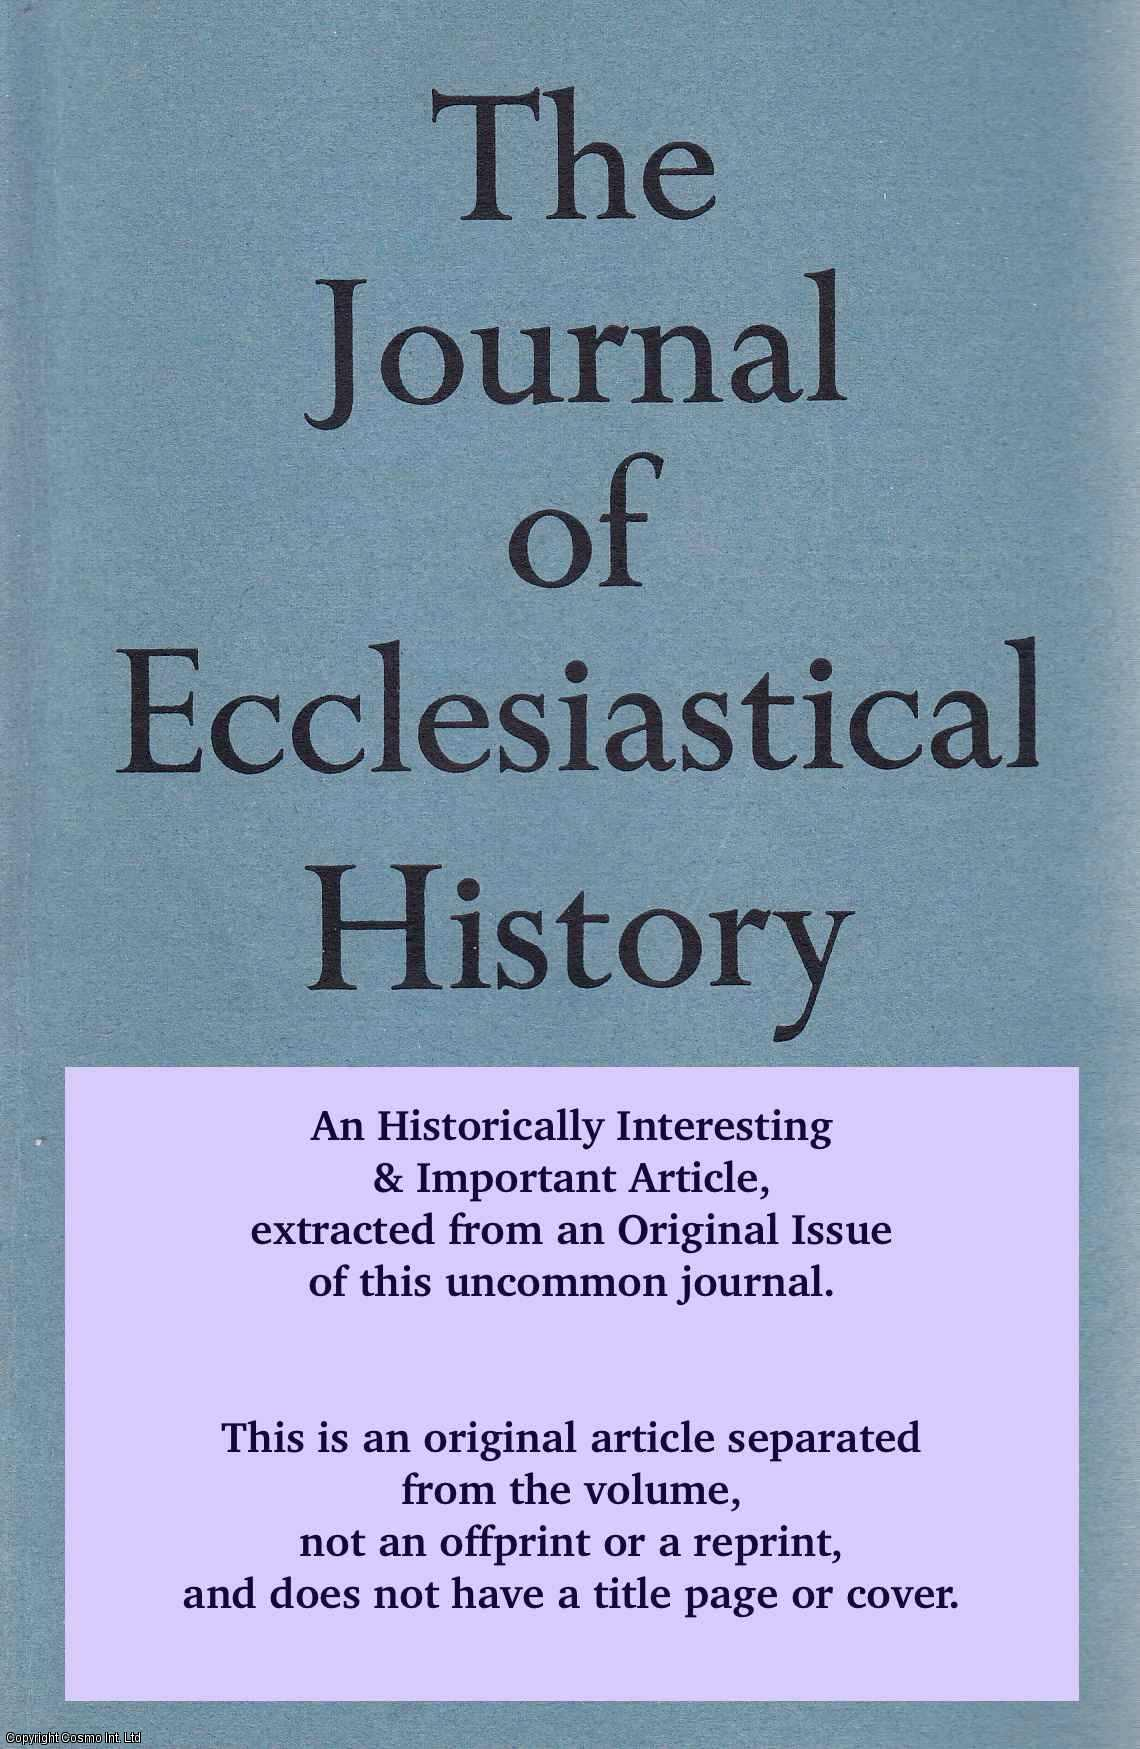 RATCLIFF, E.C. - The Liturgical Work of Archbishop Cranmer. An original article from the The Journal of Ecclesiastical History 1956.